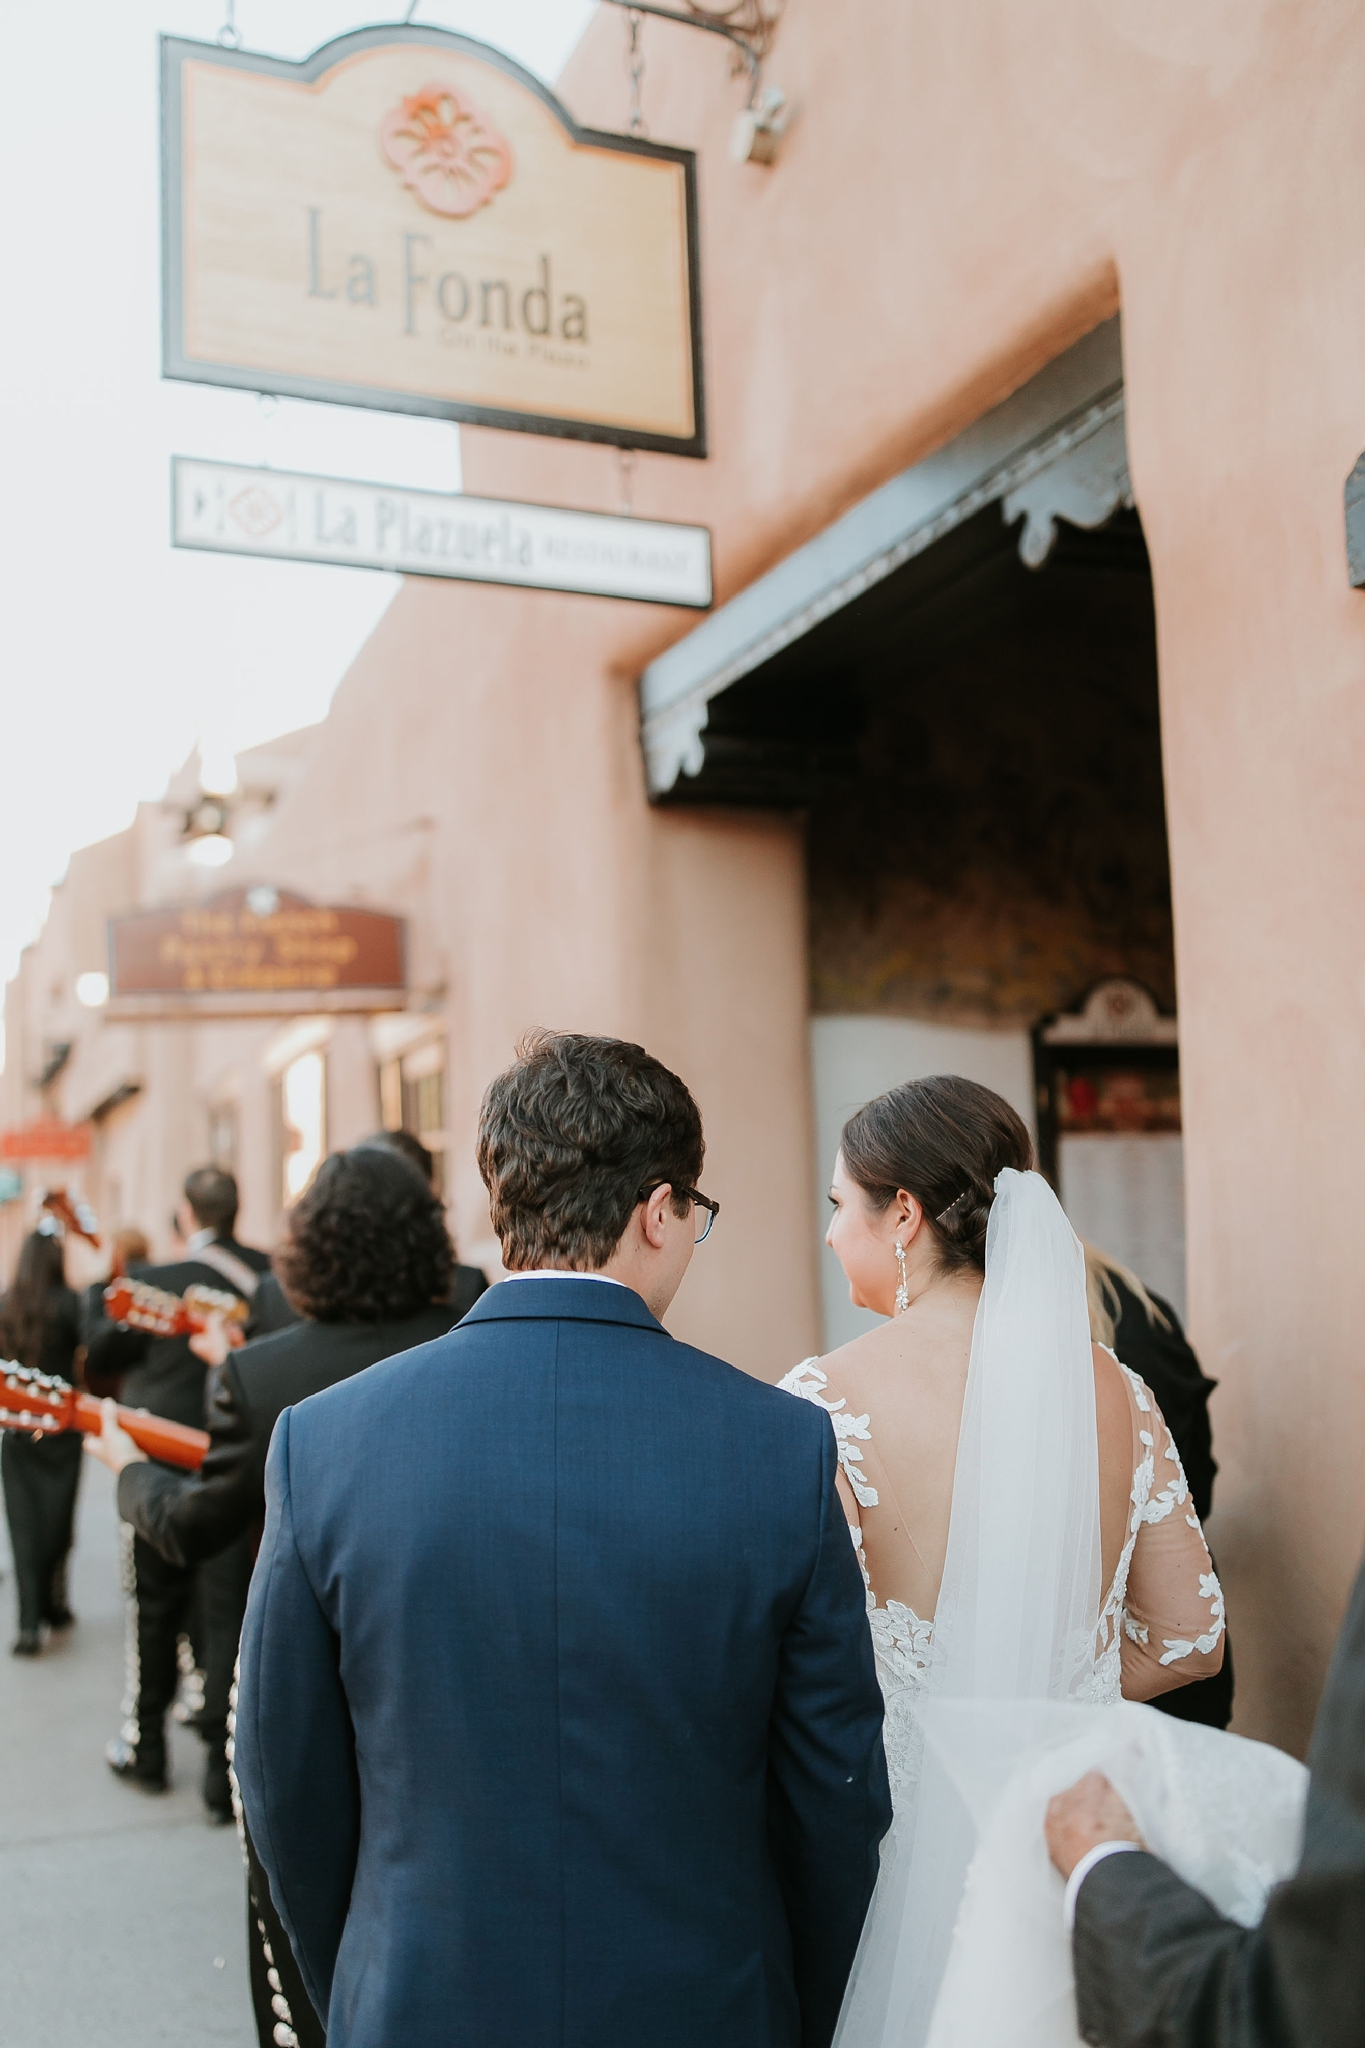 Alicia+lucia+photography+-+albuquerque+wedding+photographer+-+santa+fe+wedding+photography+-+new+mexico+wedding+photographer+-+new+mexico+wedding+-+engagement+-+santa+fe+wedding+-+la+fonda+on+the+plaza+-+la+fonda+wedding_0014.jpg